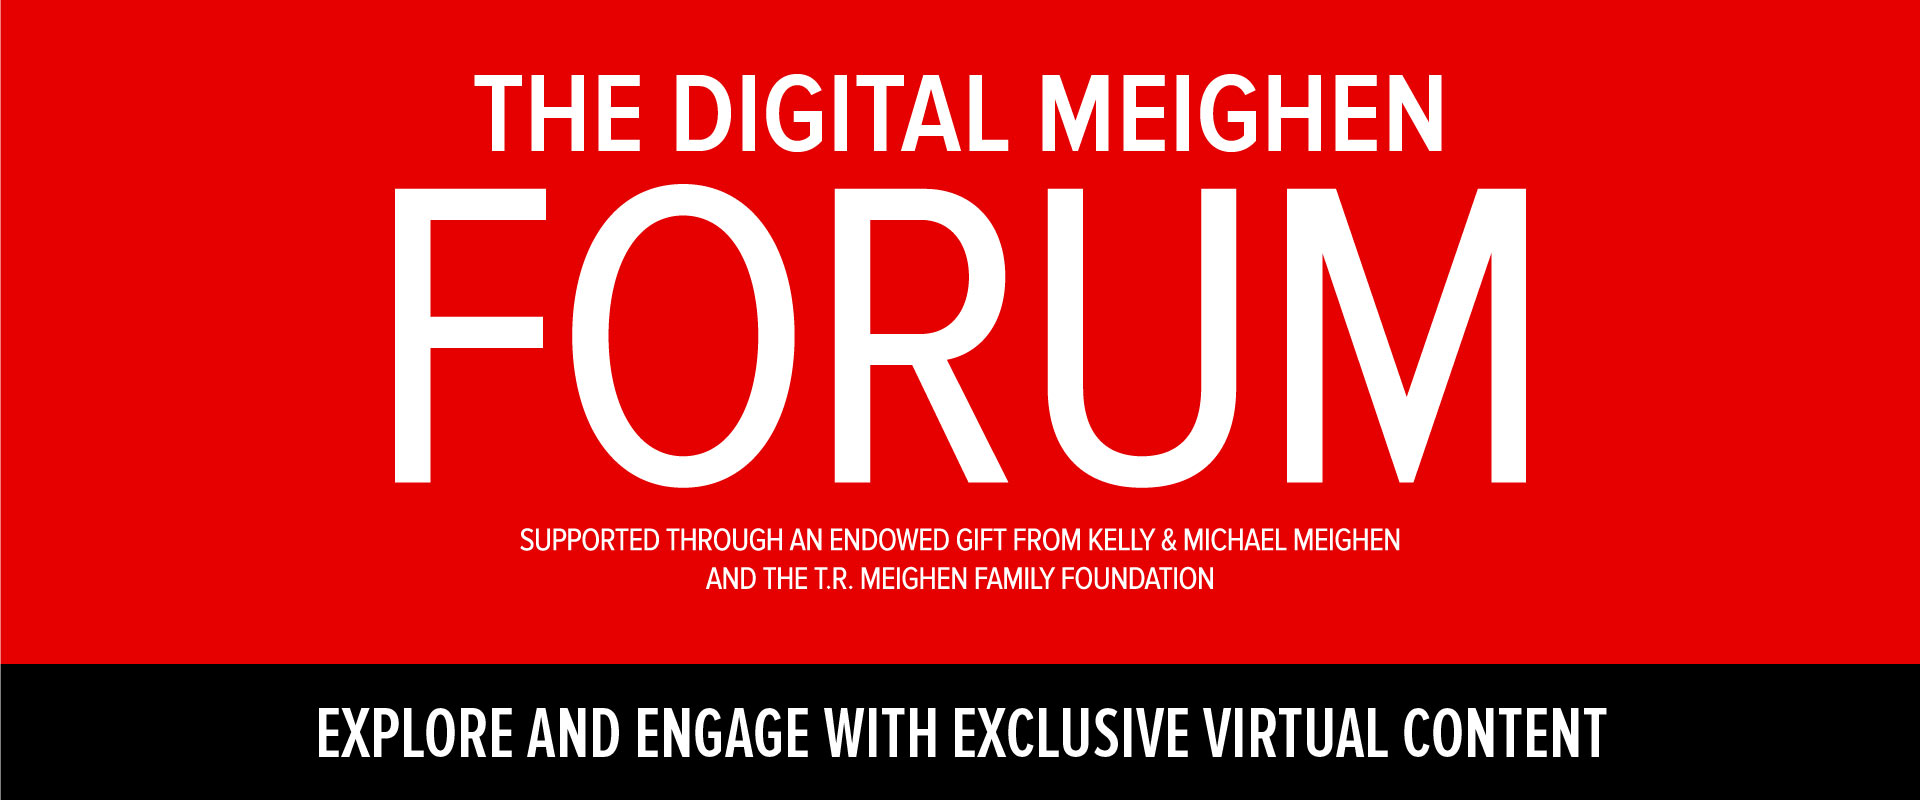 Explore and engage with exclusive virtual content in the digital meighen forum